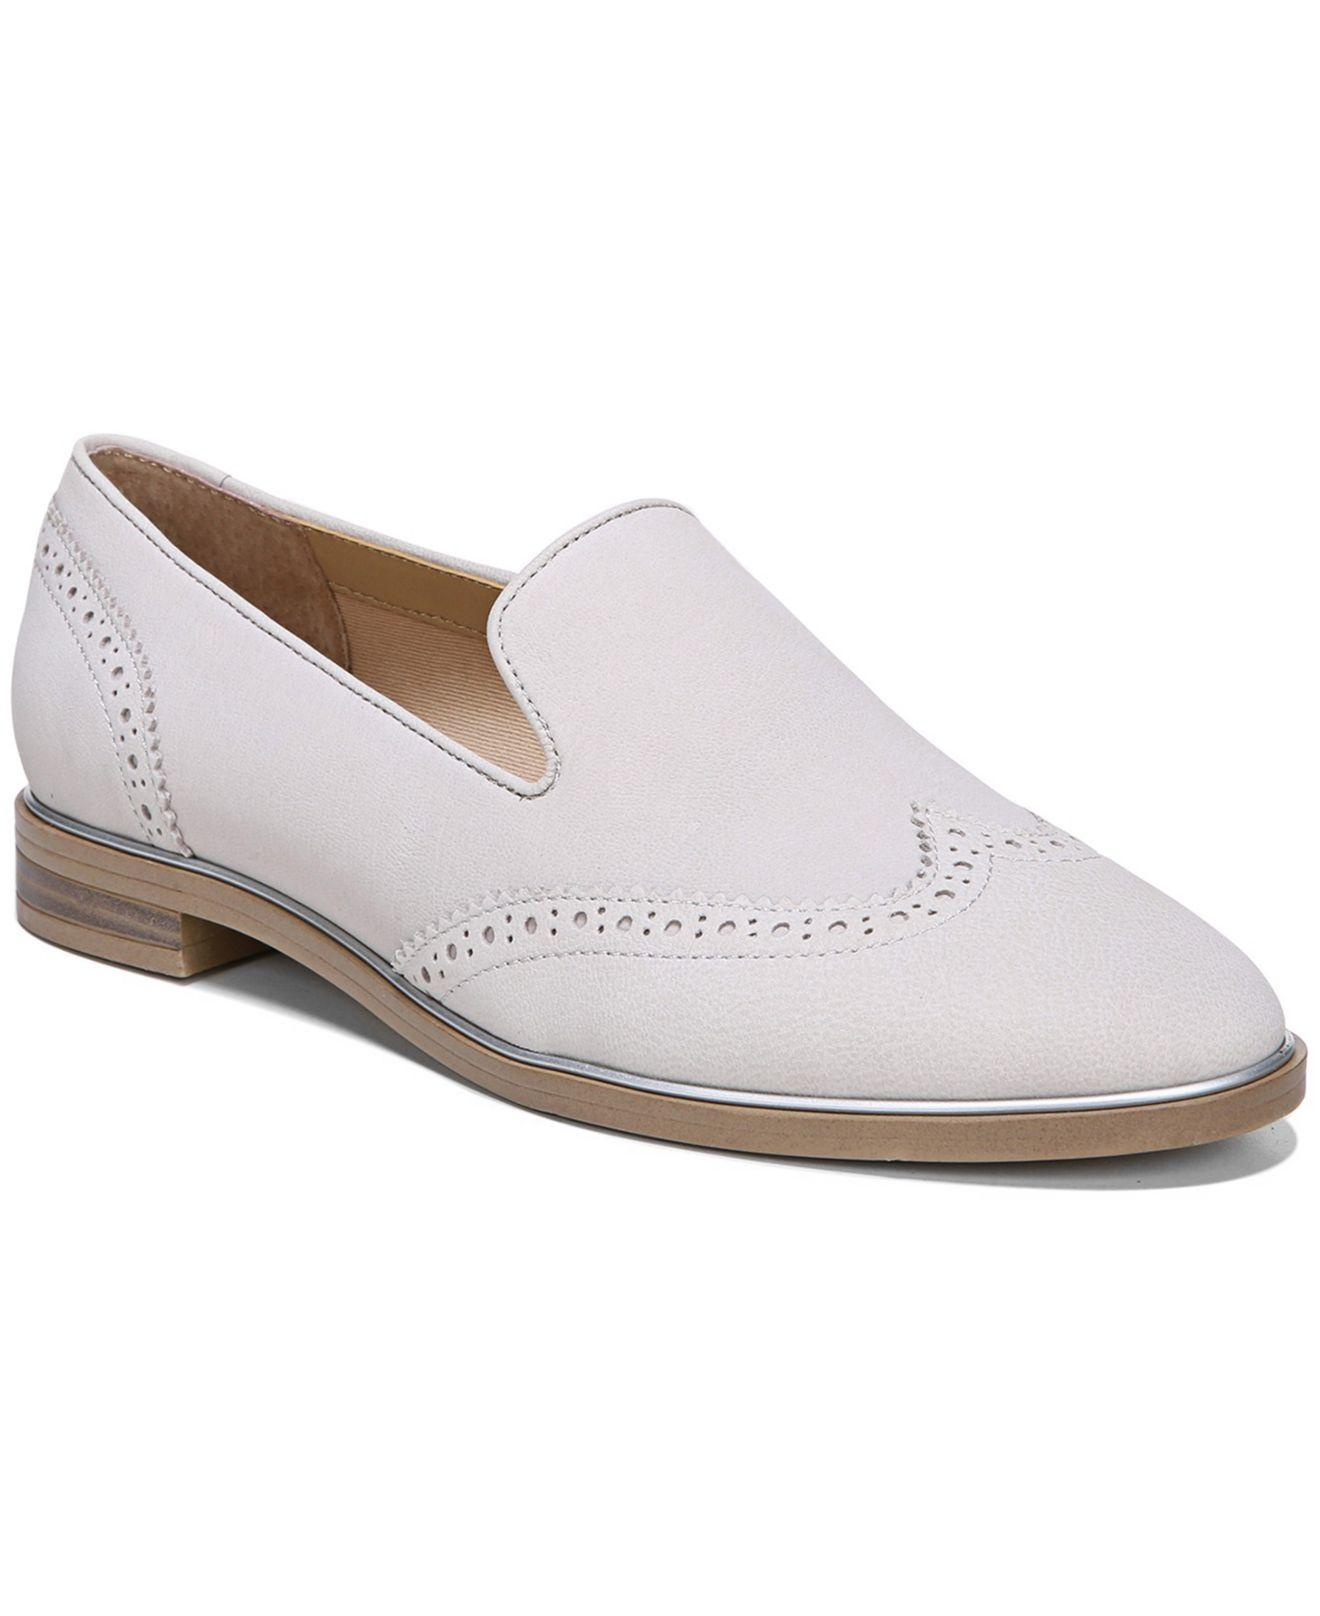 5d8a126bba0 Franco Sarto. Women s Gray Haydrian Loafer.  99  49 From Macy s. Free  shipping with Macy s on orders over ...